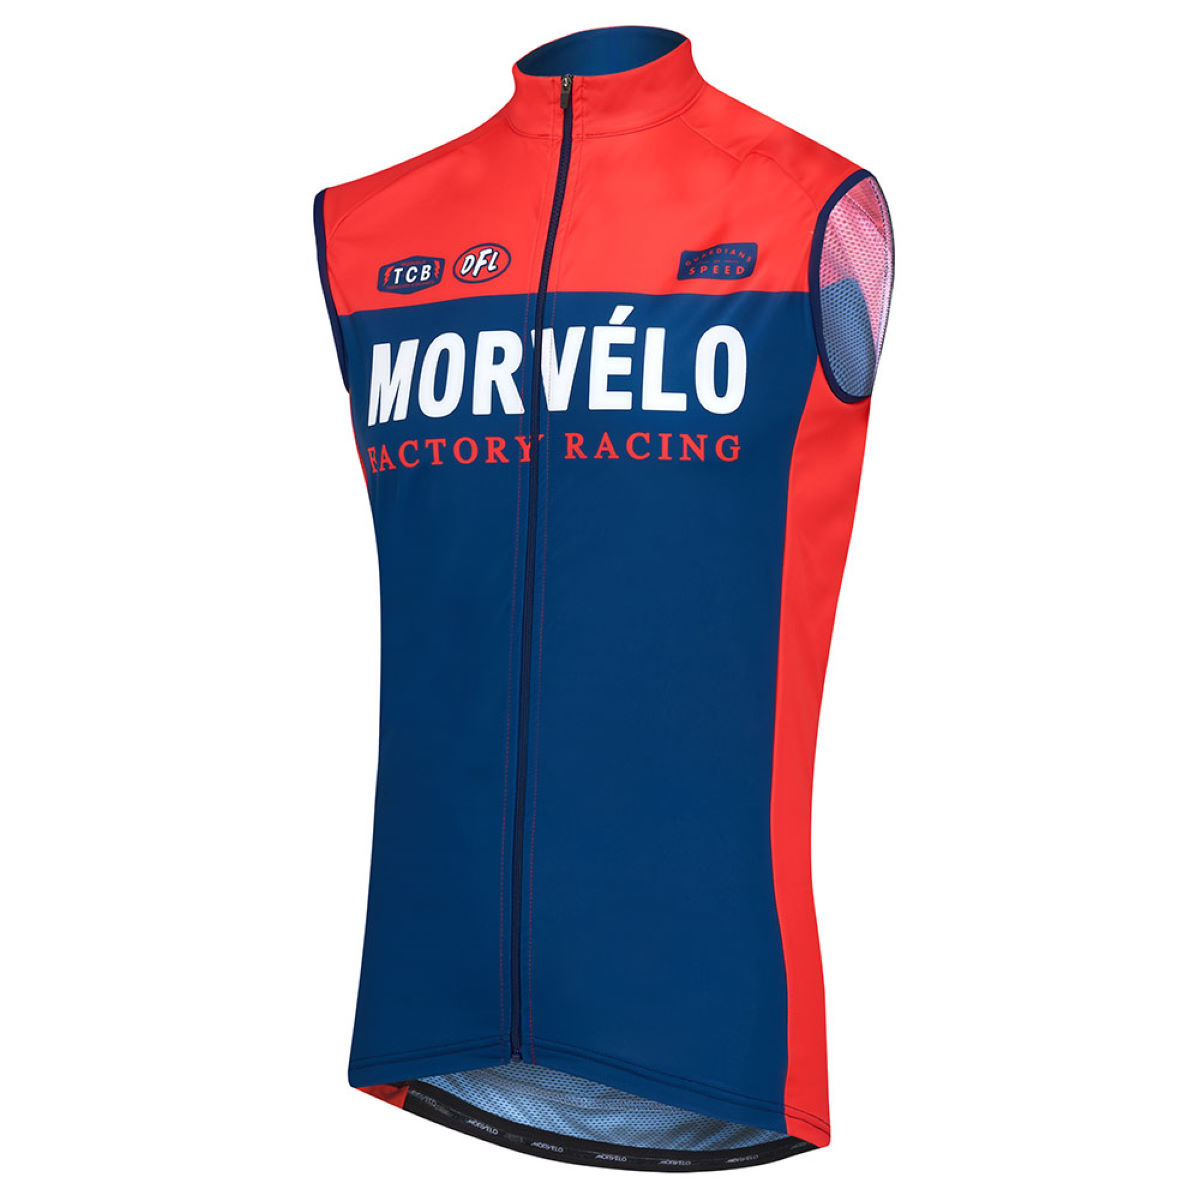 Gilet sans manches VTT Morvelo Factory Racing Covert - M Factory Racing Gilets vélo